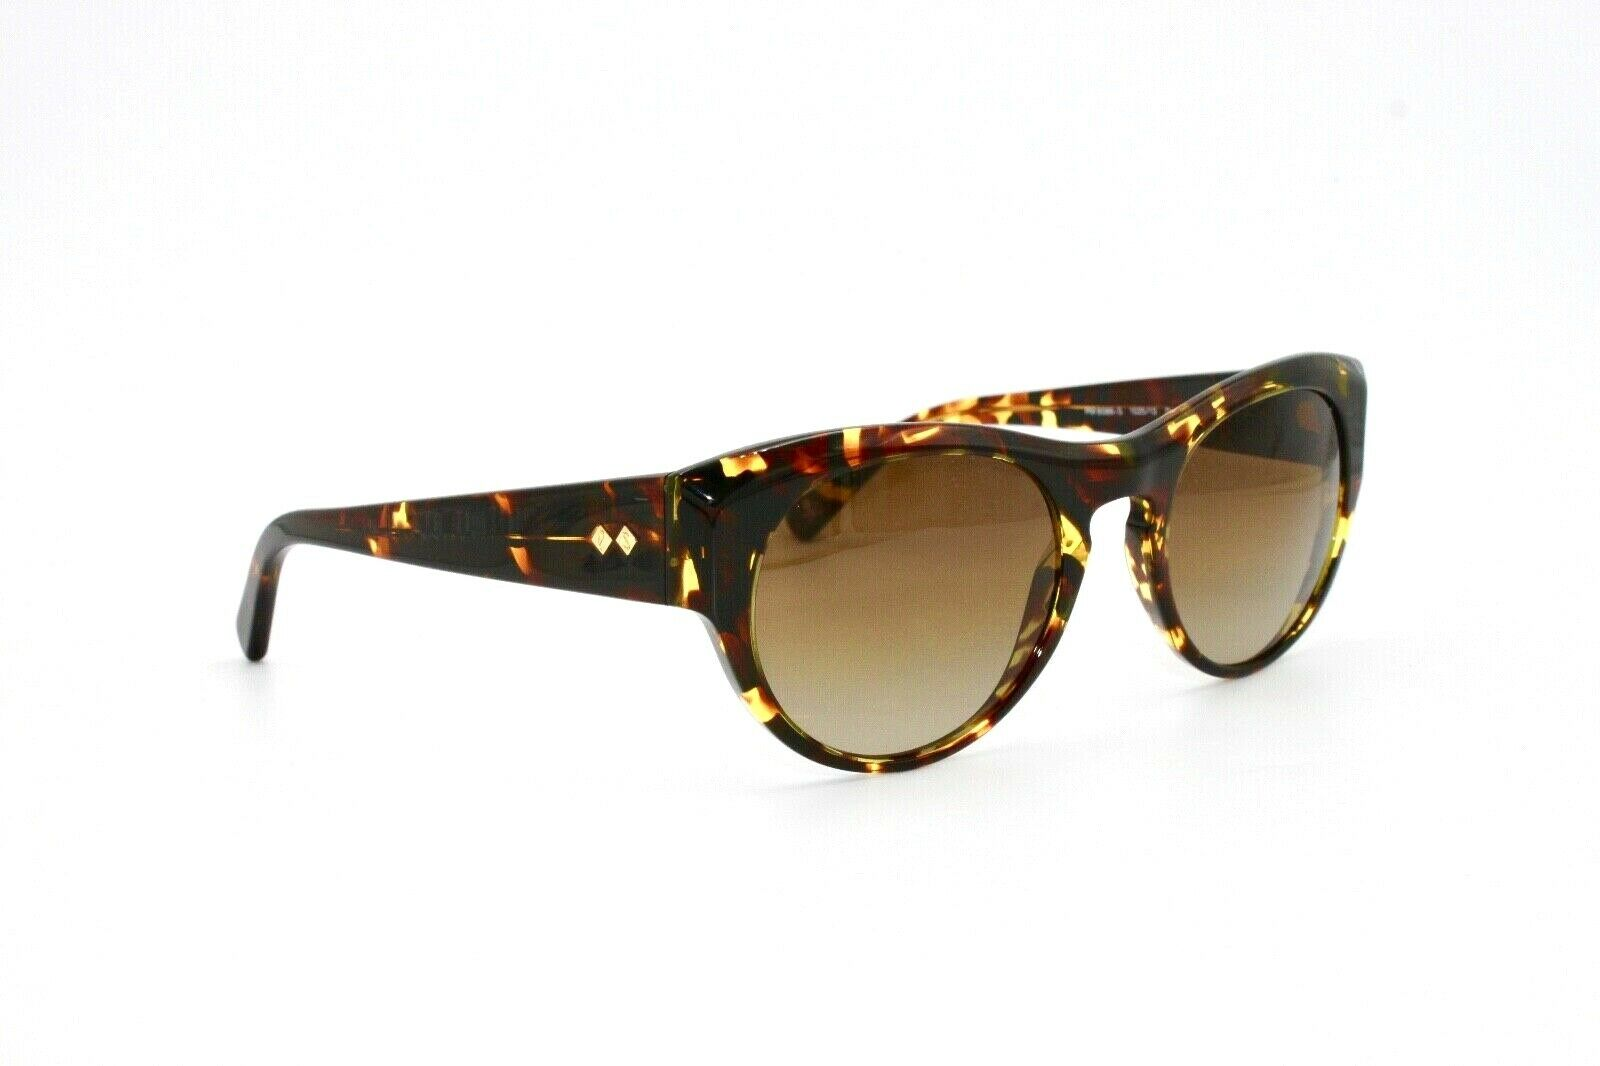 Paul Smith Sunglasses PM 8086-S 1025/13 Develay 52 21 140 3N Made in Italy - Mydesigneroptic